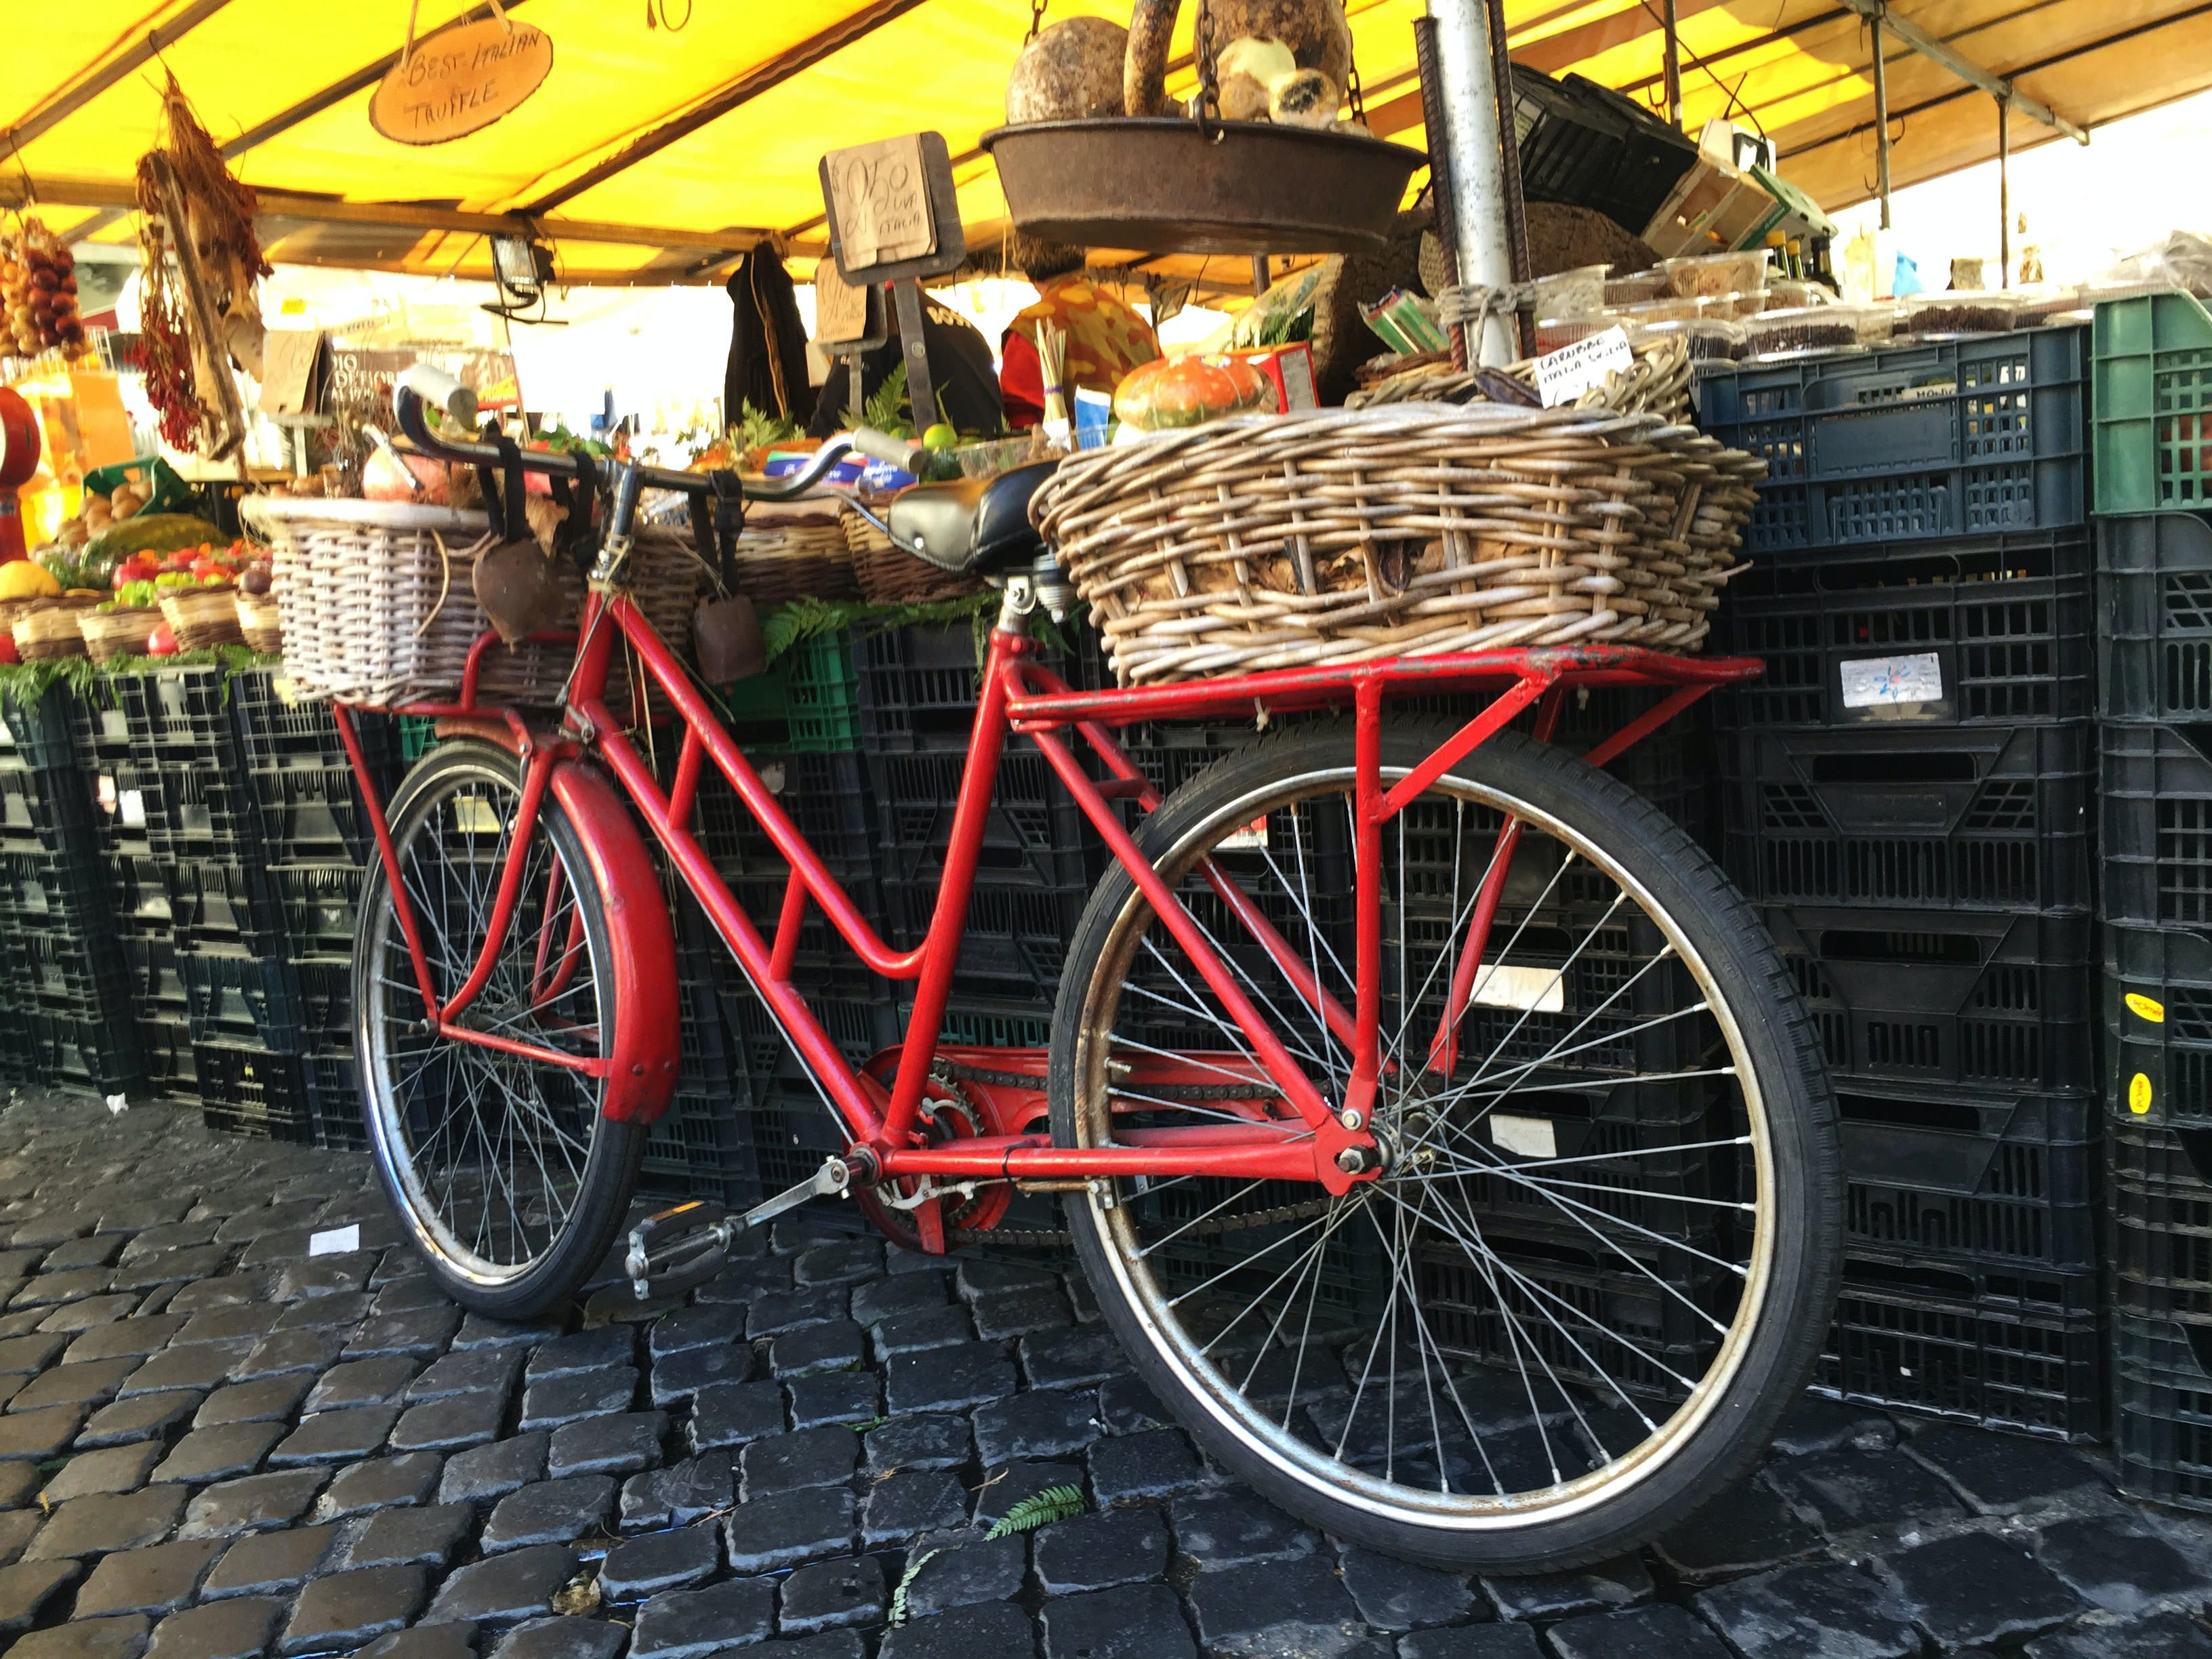 Free stock photo of vegetables, street market, bicycle, spices